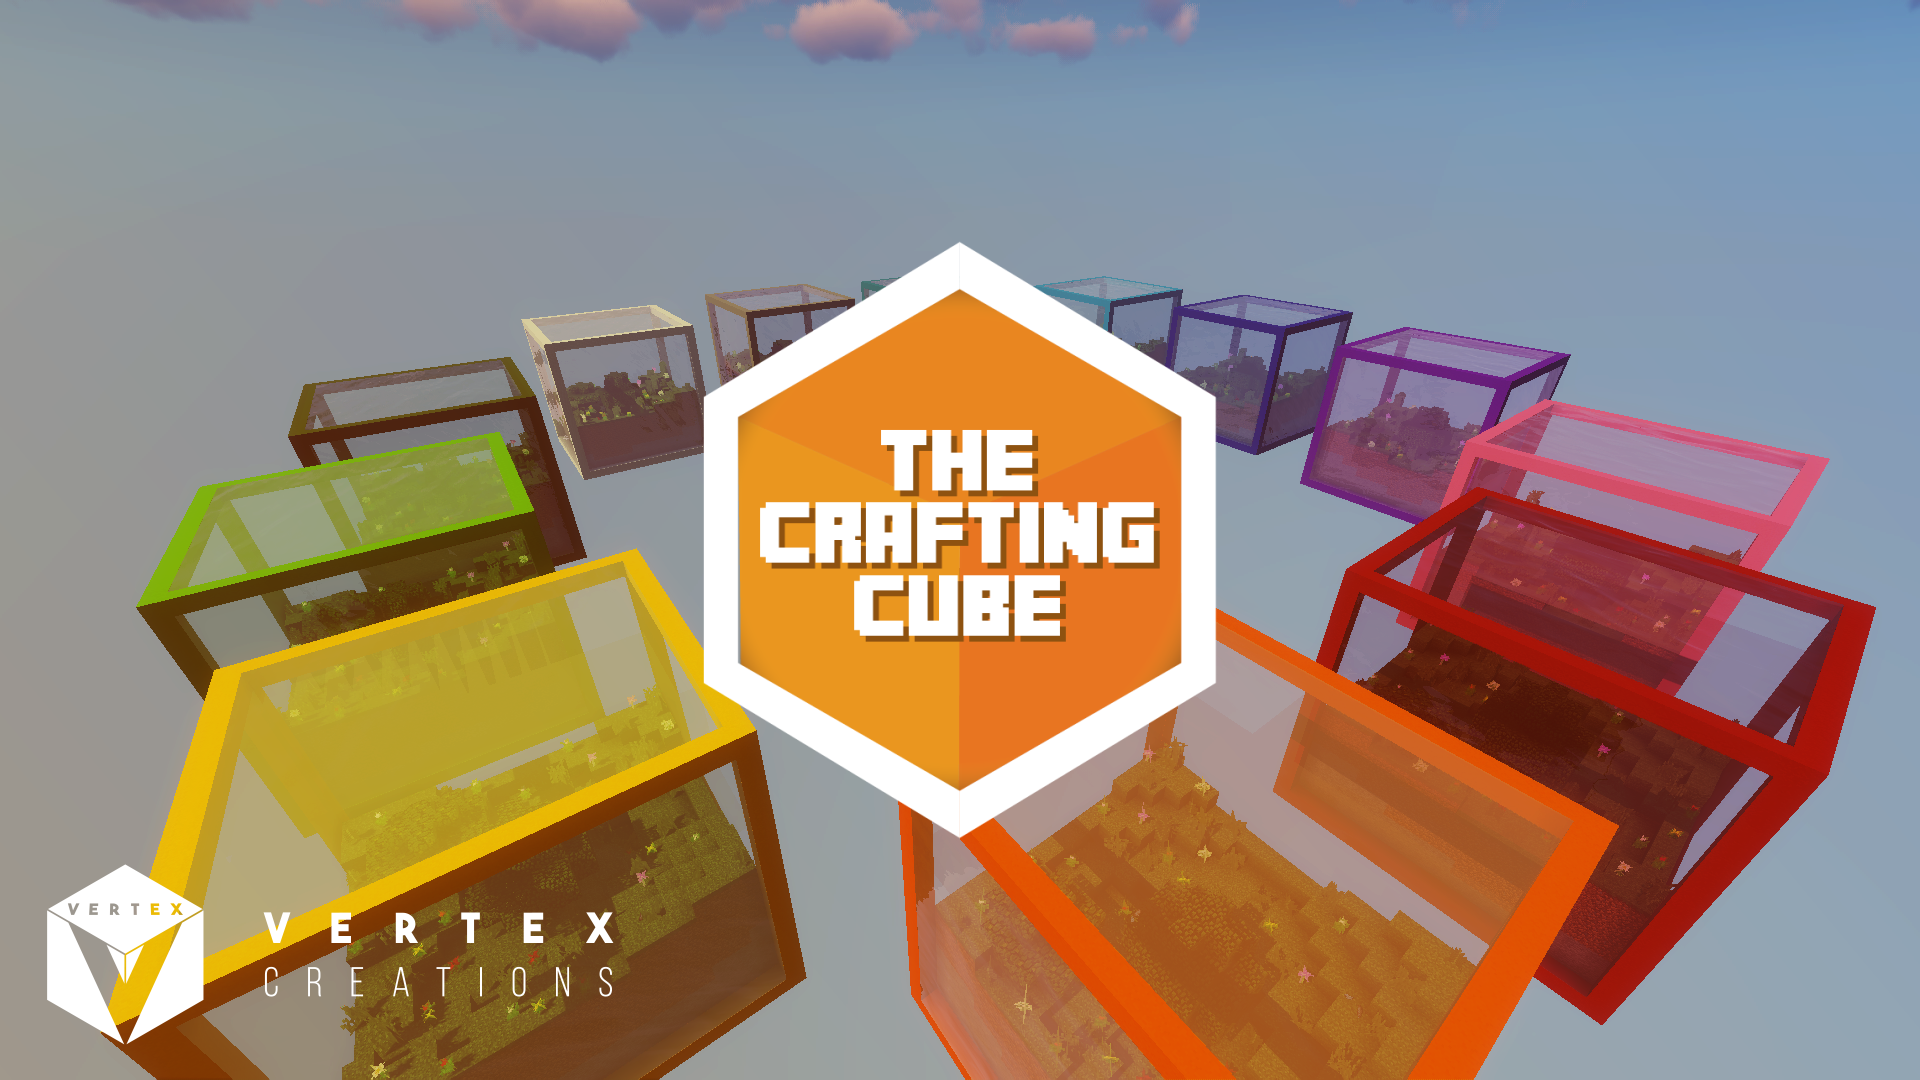 The Crafting Cube